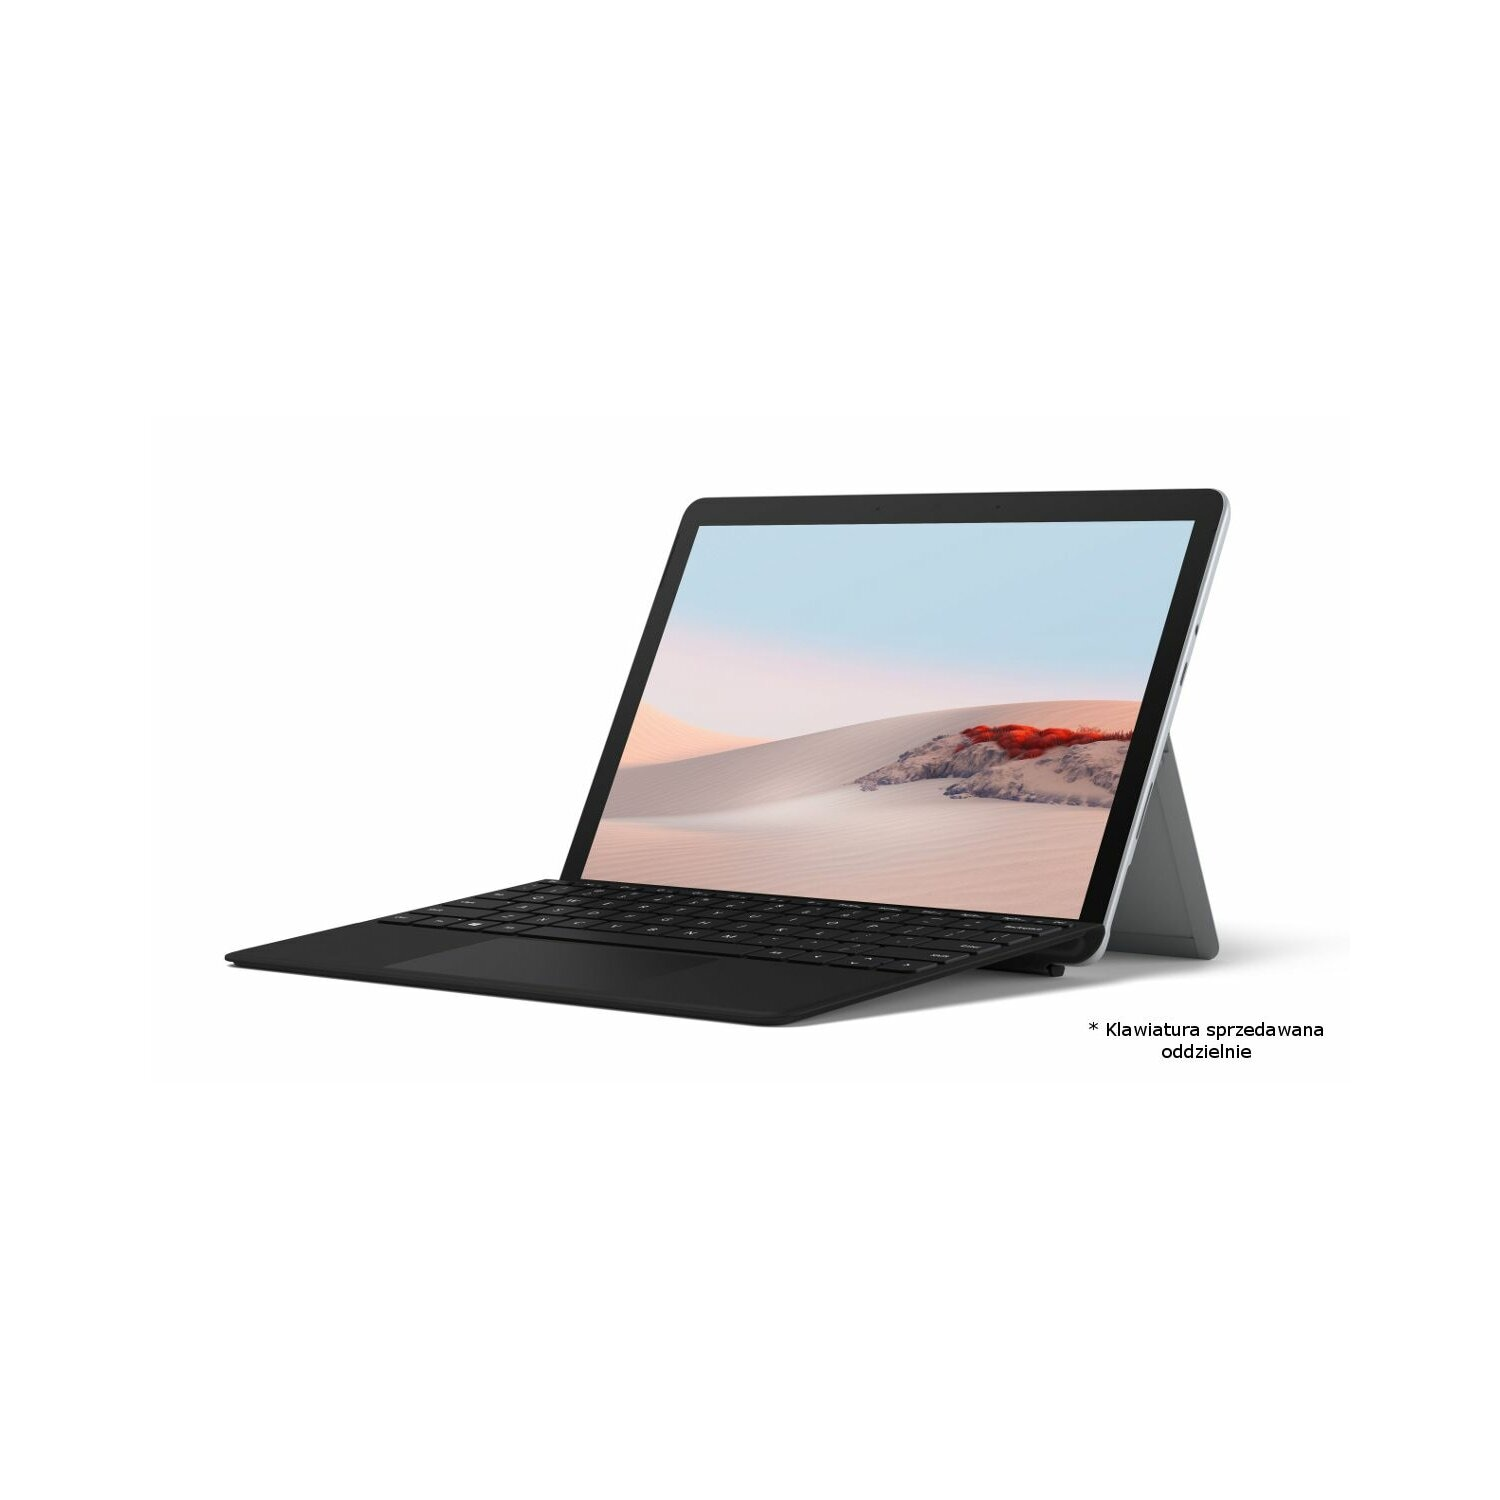 Laptop/Tablet 2w1 MICROSOFT Surface Go 2 Wi-Fi Dotykowy Pentium 4425Y/8GB/128GB SSD/INT/Win10H